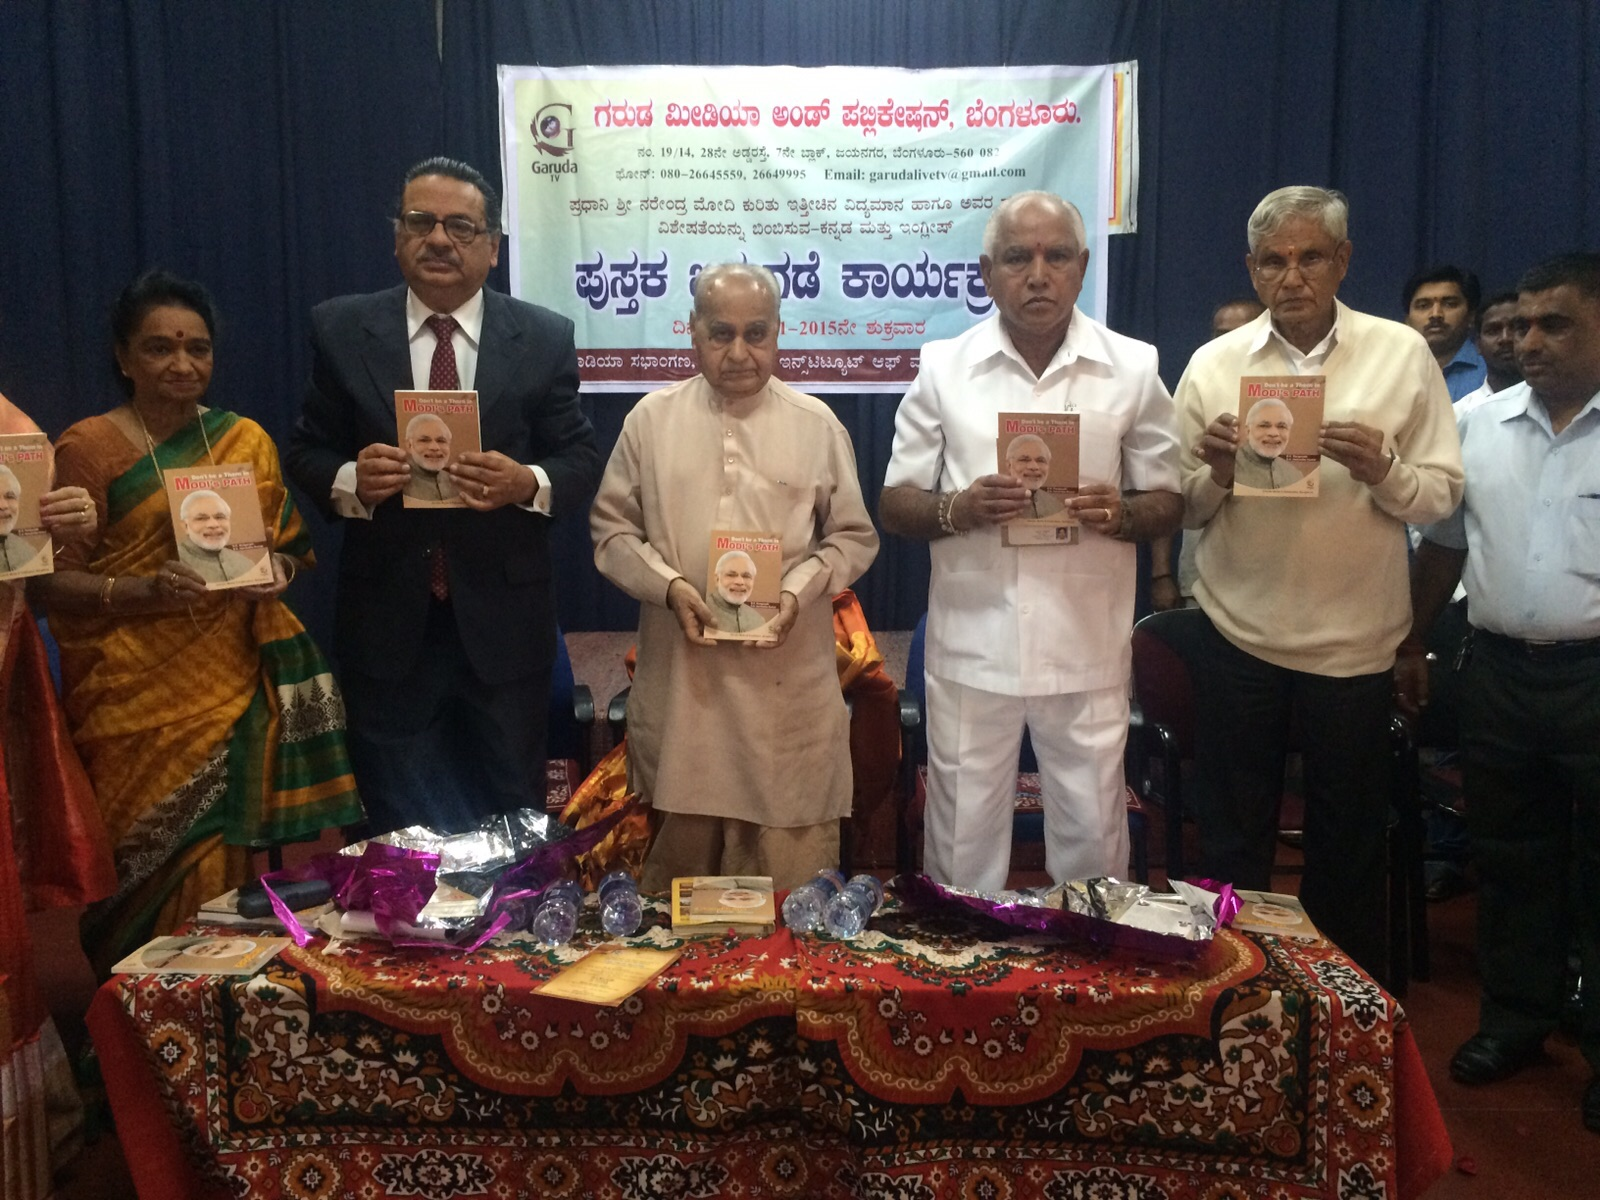 Released a book on Modiji's vision on India's growth in Kannada & English